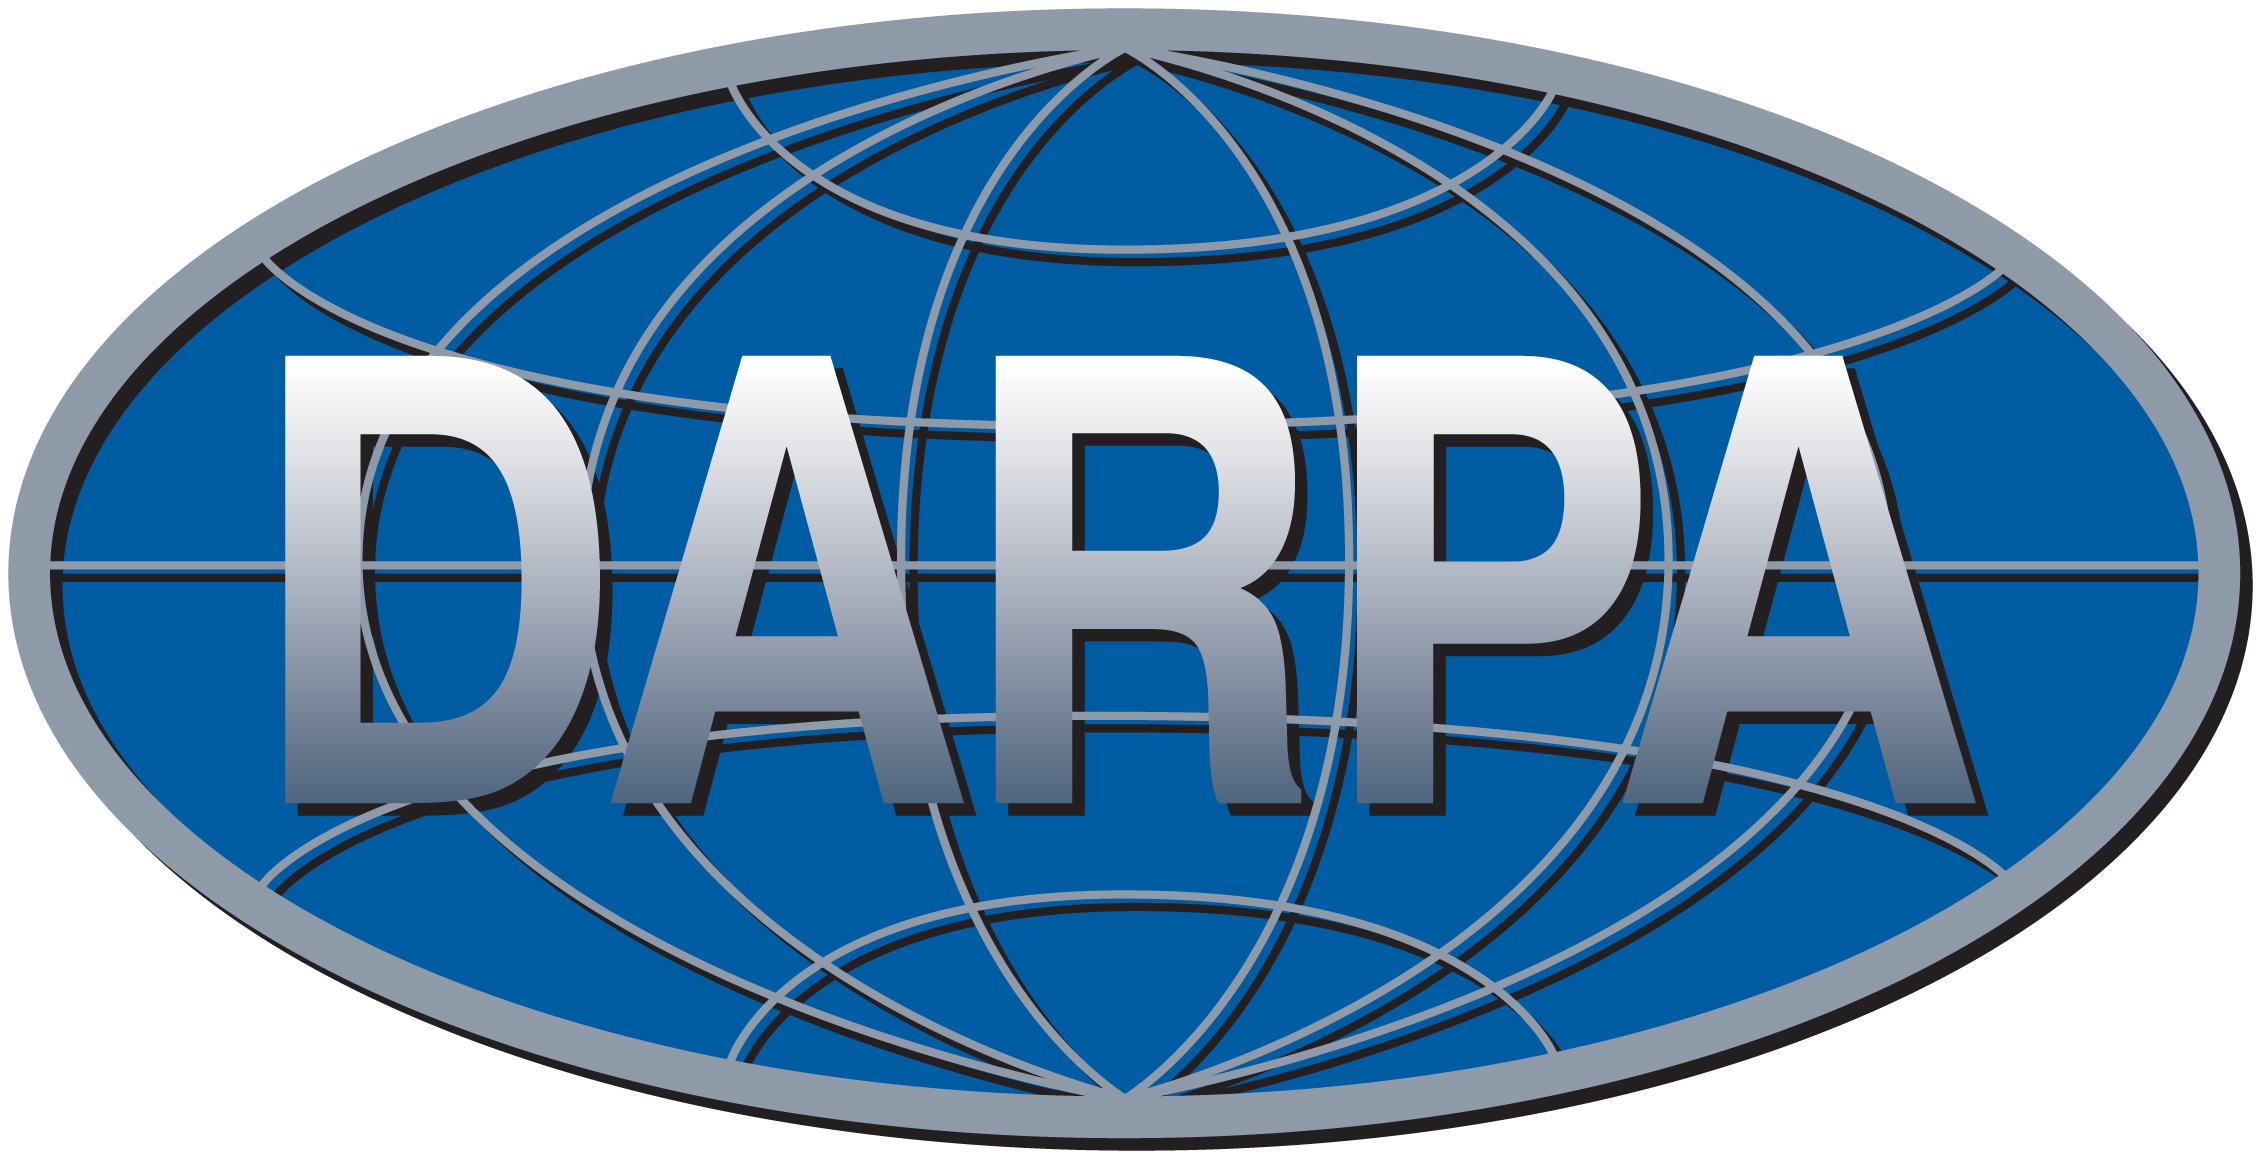 https://i2.wp.com/upload.wikimedia.org/wikipedia/commons/6/6e/DARPA_Logo.jpg